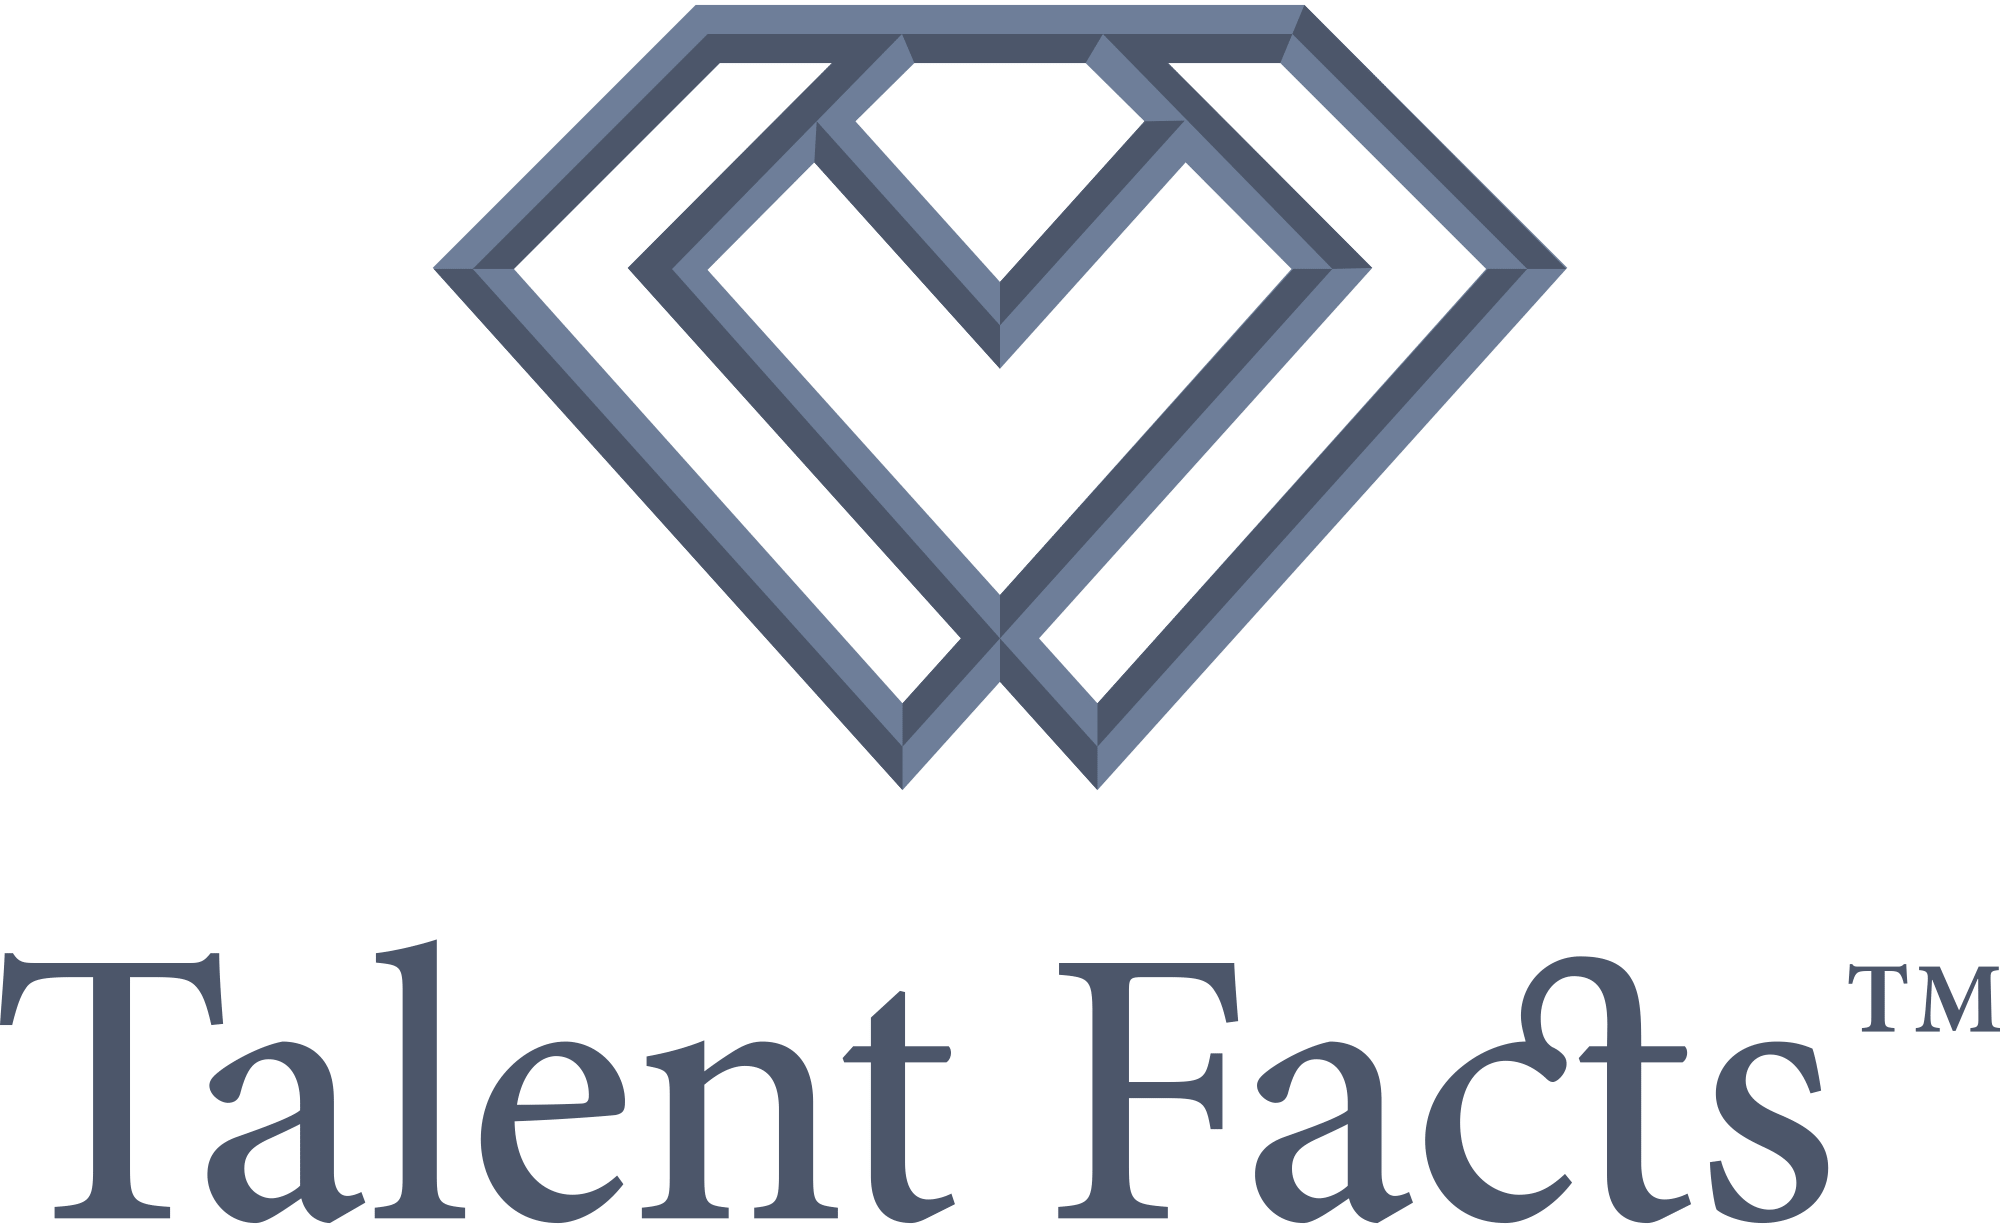 Talent Facts, full service talent adviseurs